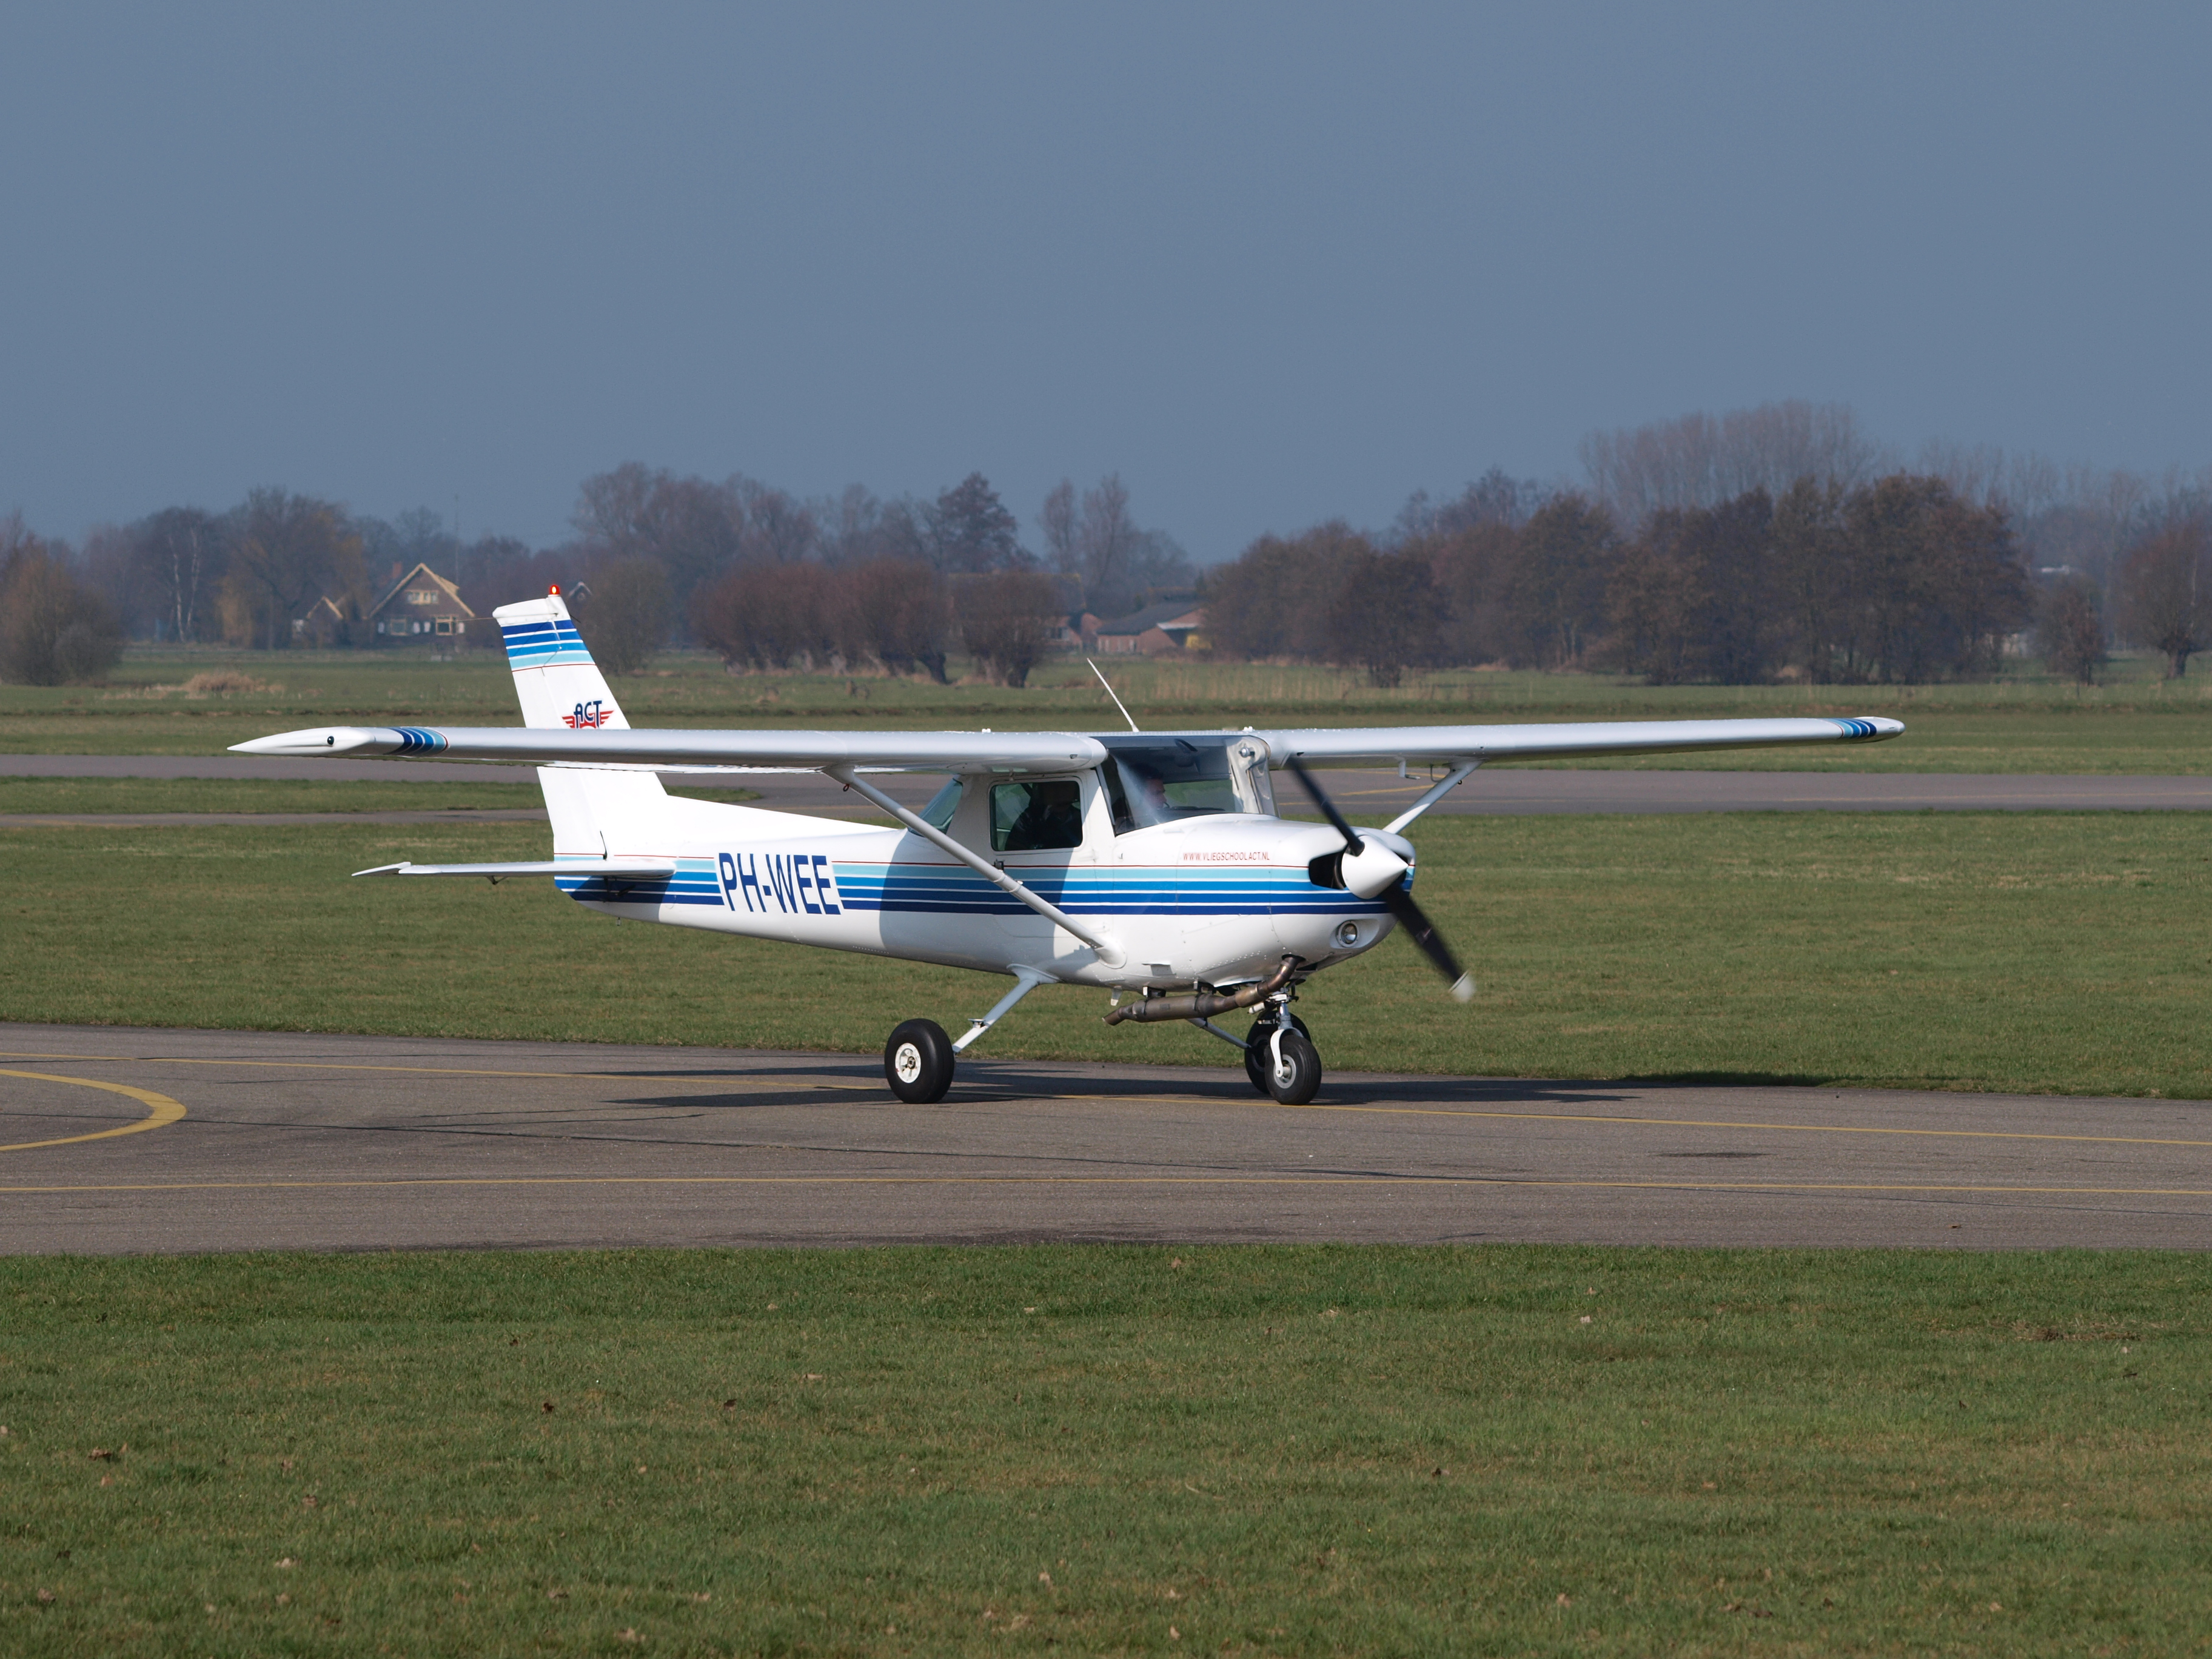 File:Cessna 152 PH-WEE at Teuge 07March2009 jpg - Wikimedia Commons